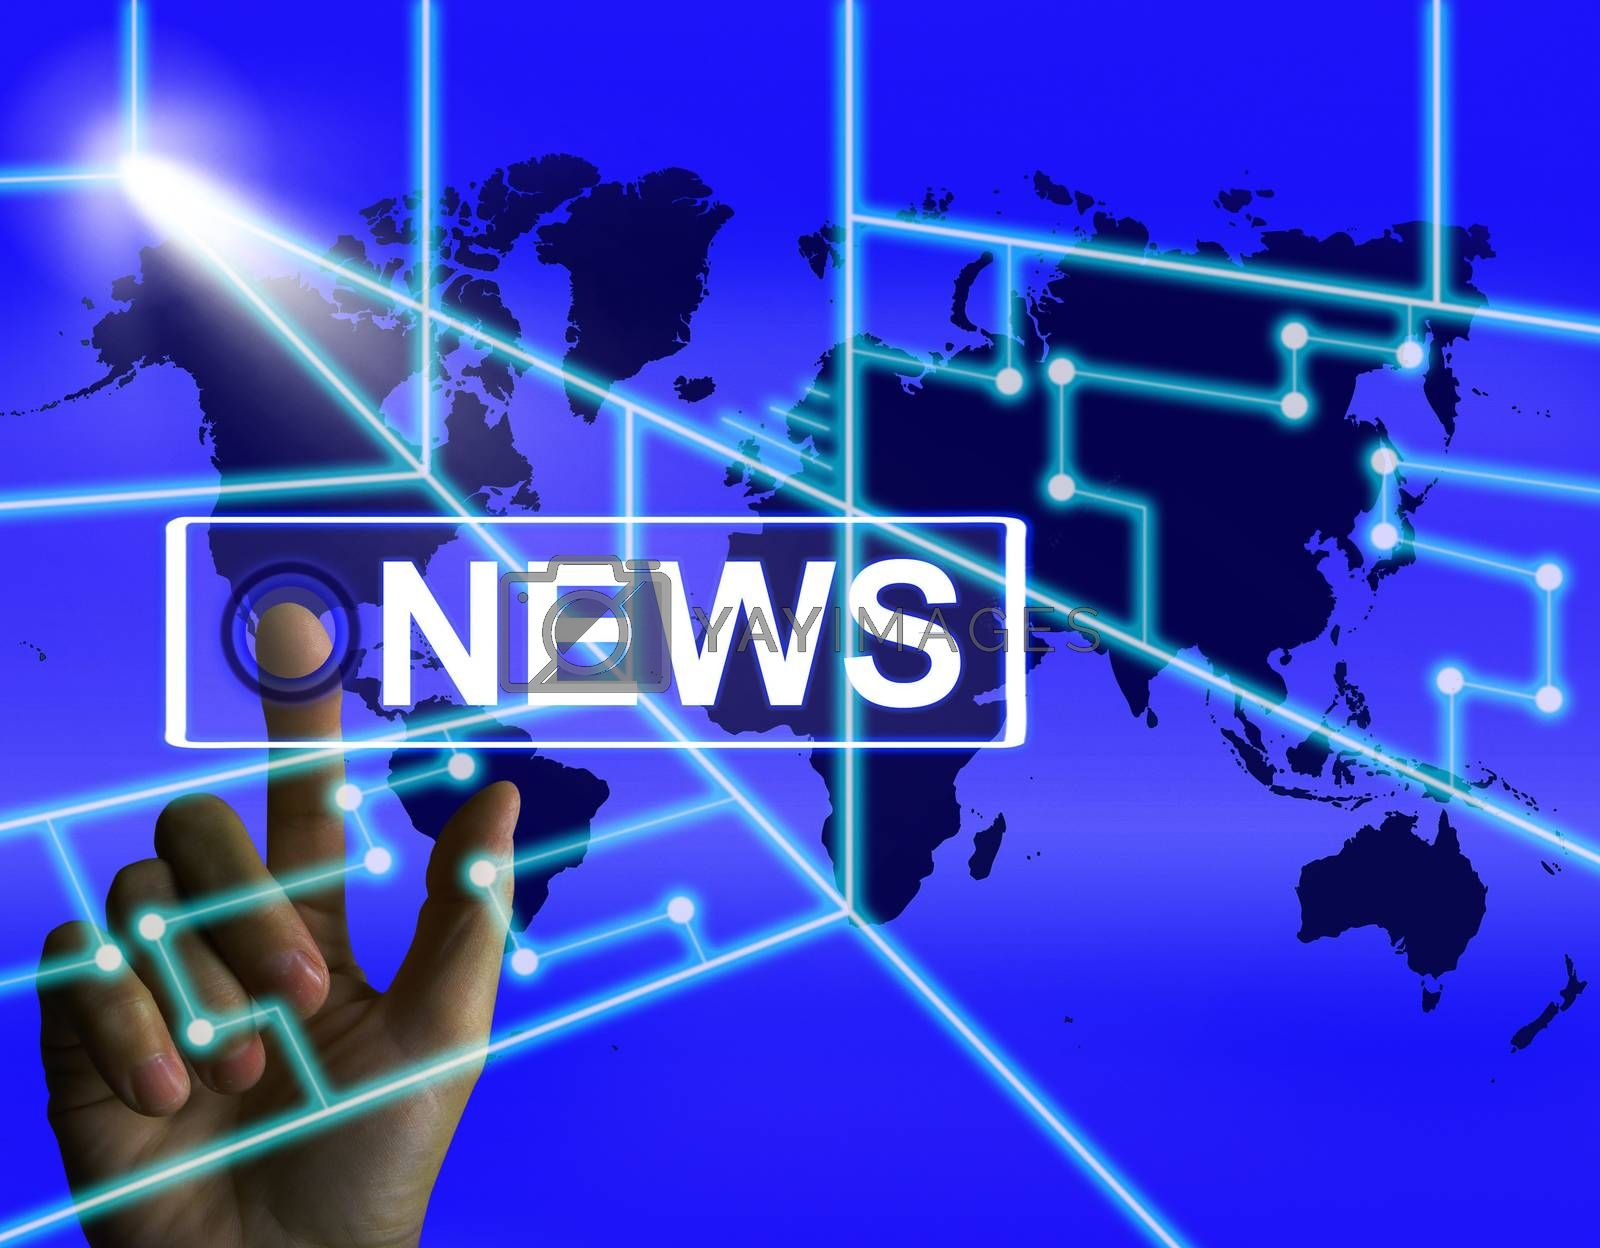 News Screen Shows Worldwide Newspaper or Media Information by stuartmiles